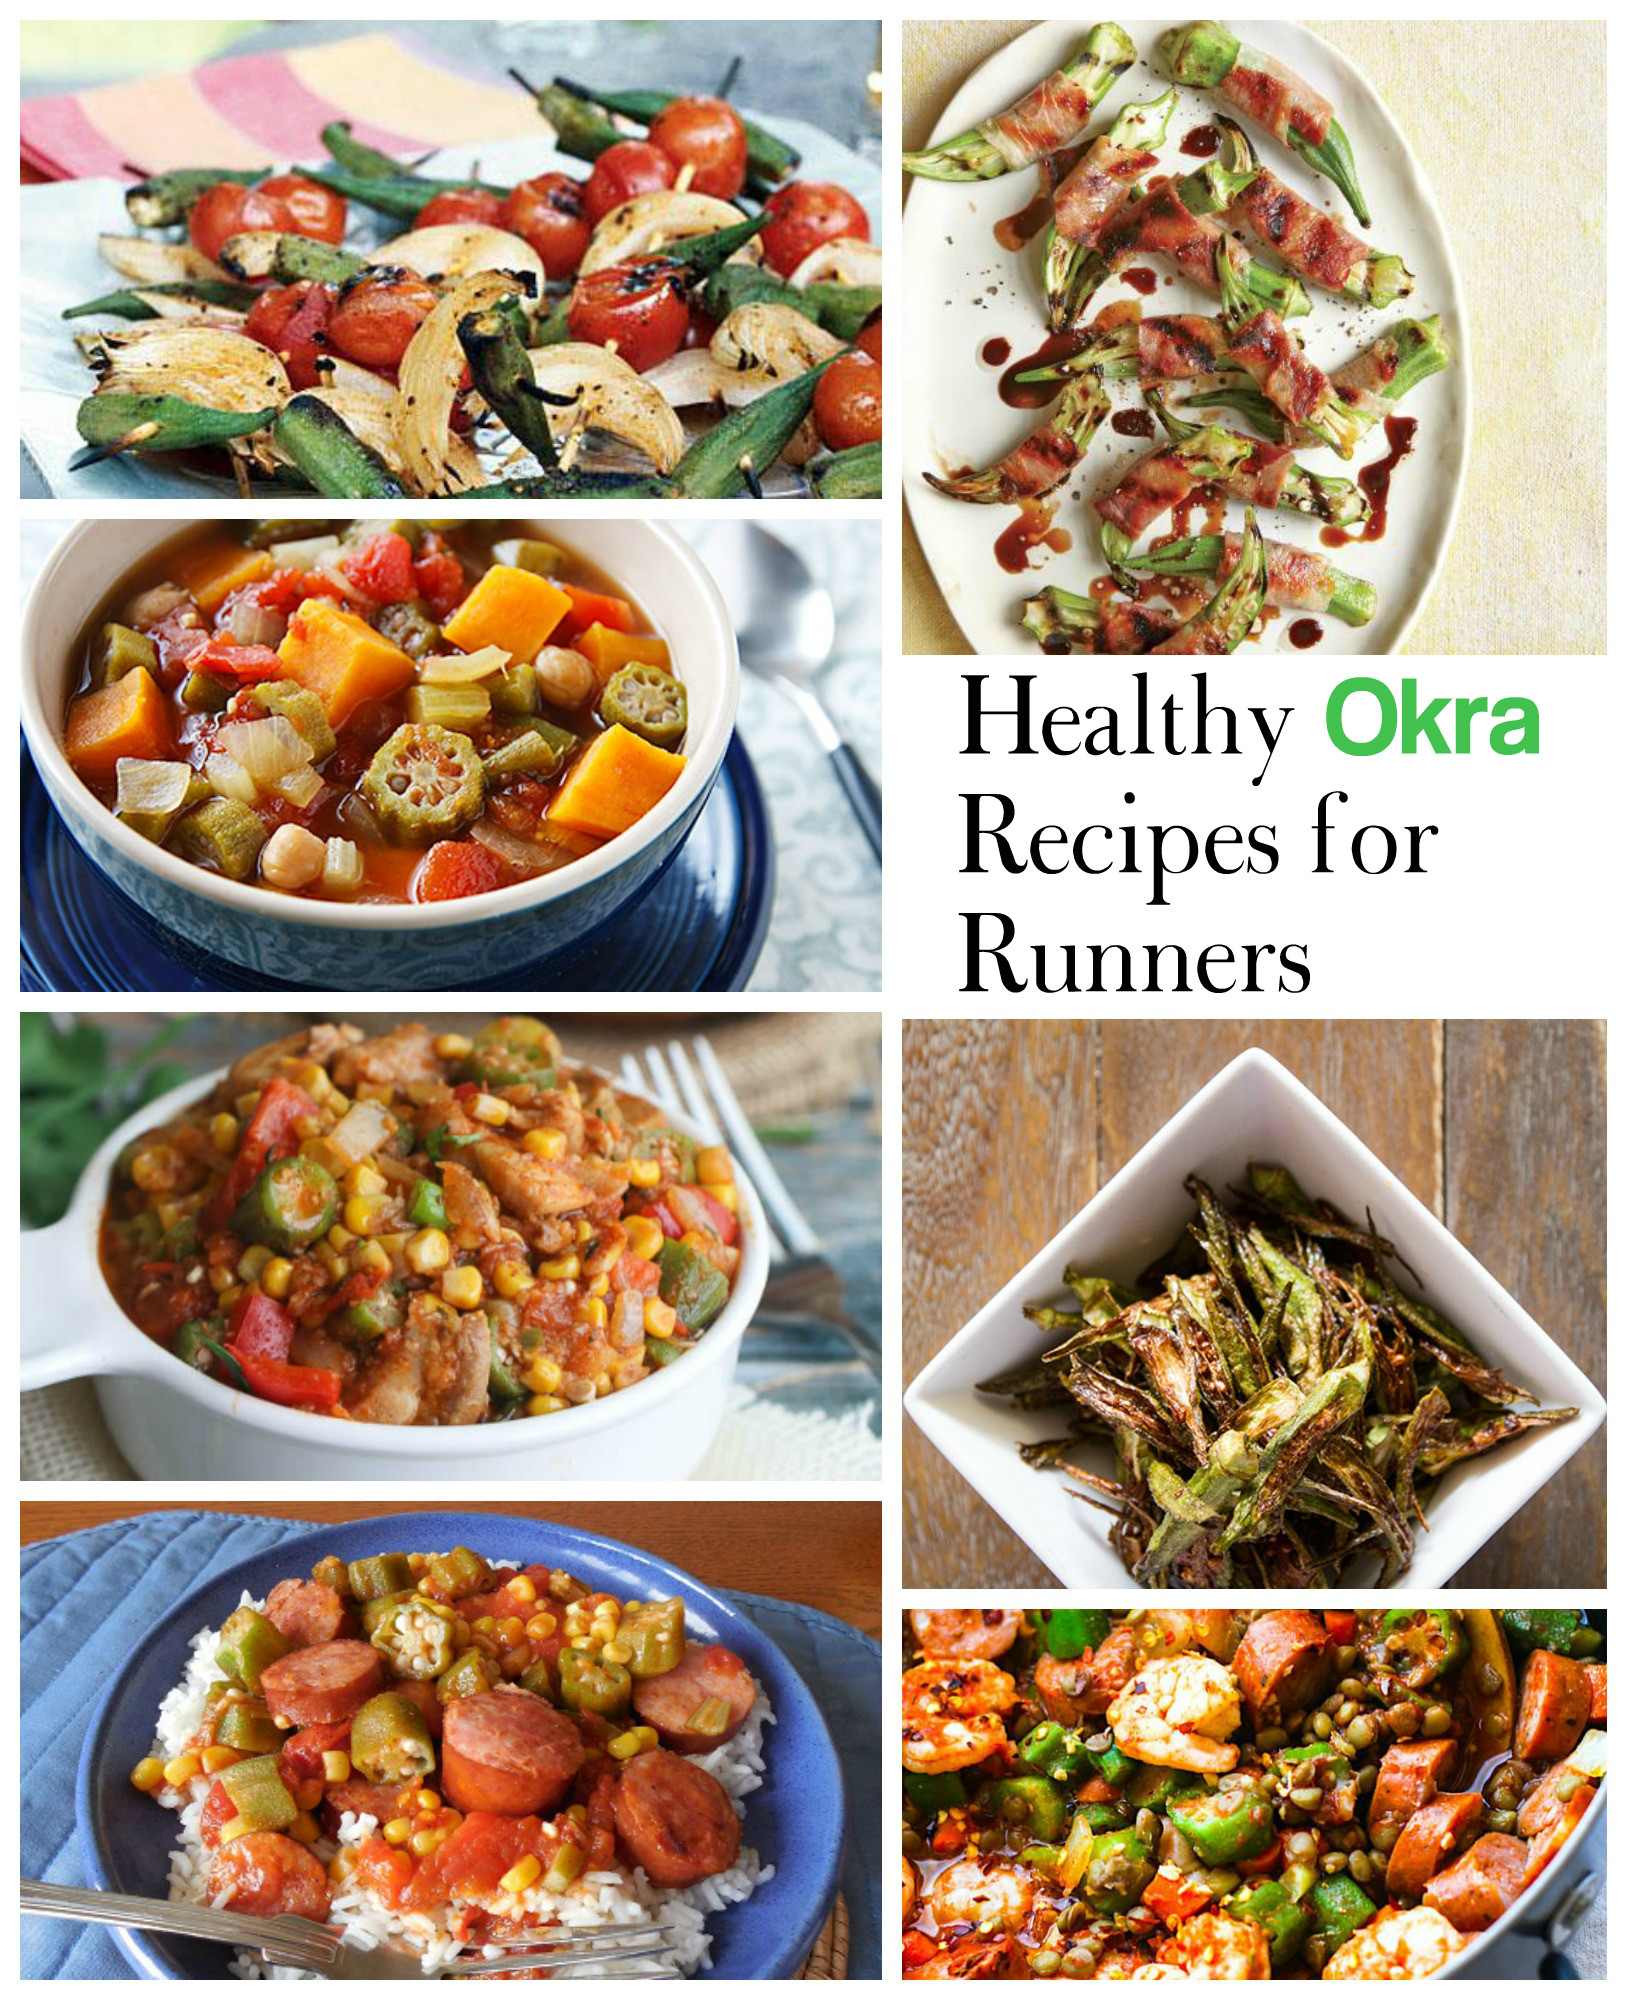 Healthy Okra Recipes for Runners